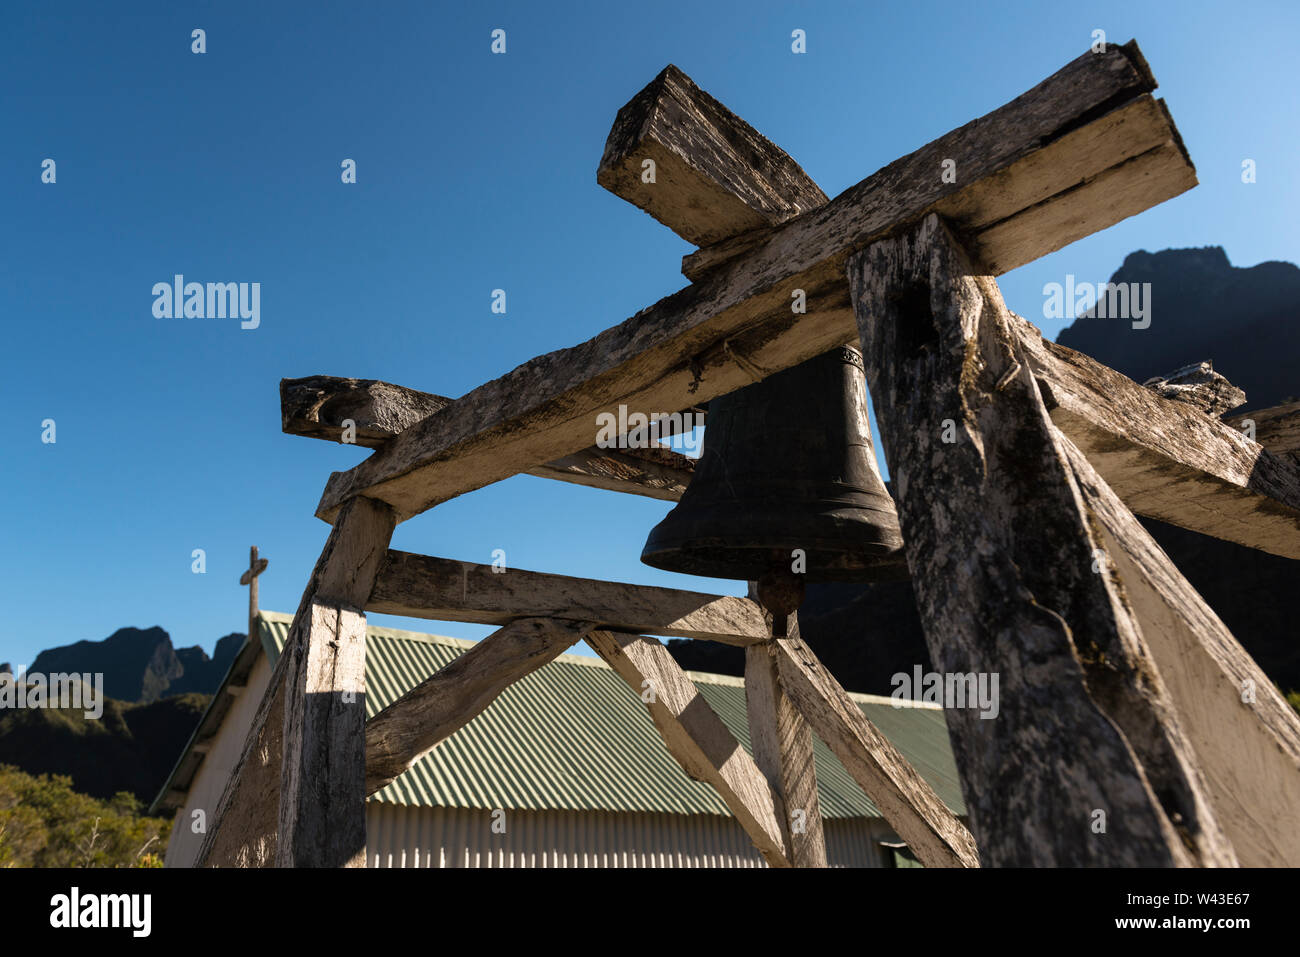 Catholic church and separate wooden bell tower in Marla village, early morning light. Caldera of Cirque de Mafate, La Reunion Stock Photo